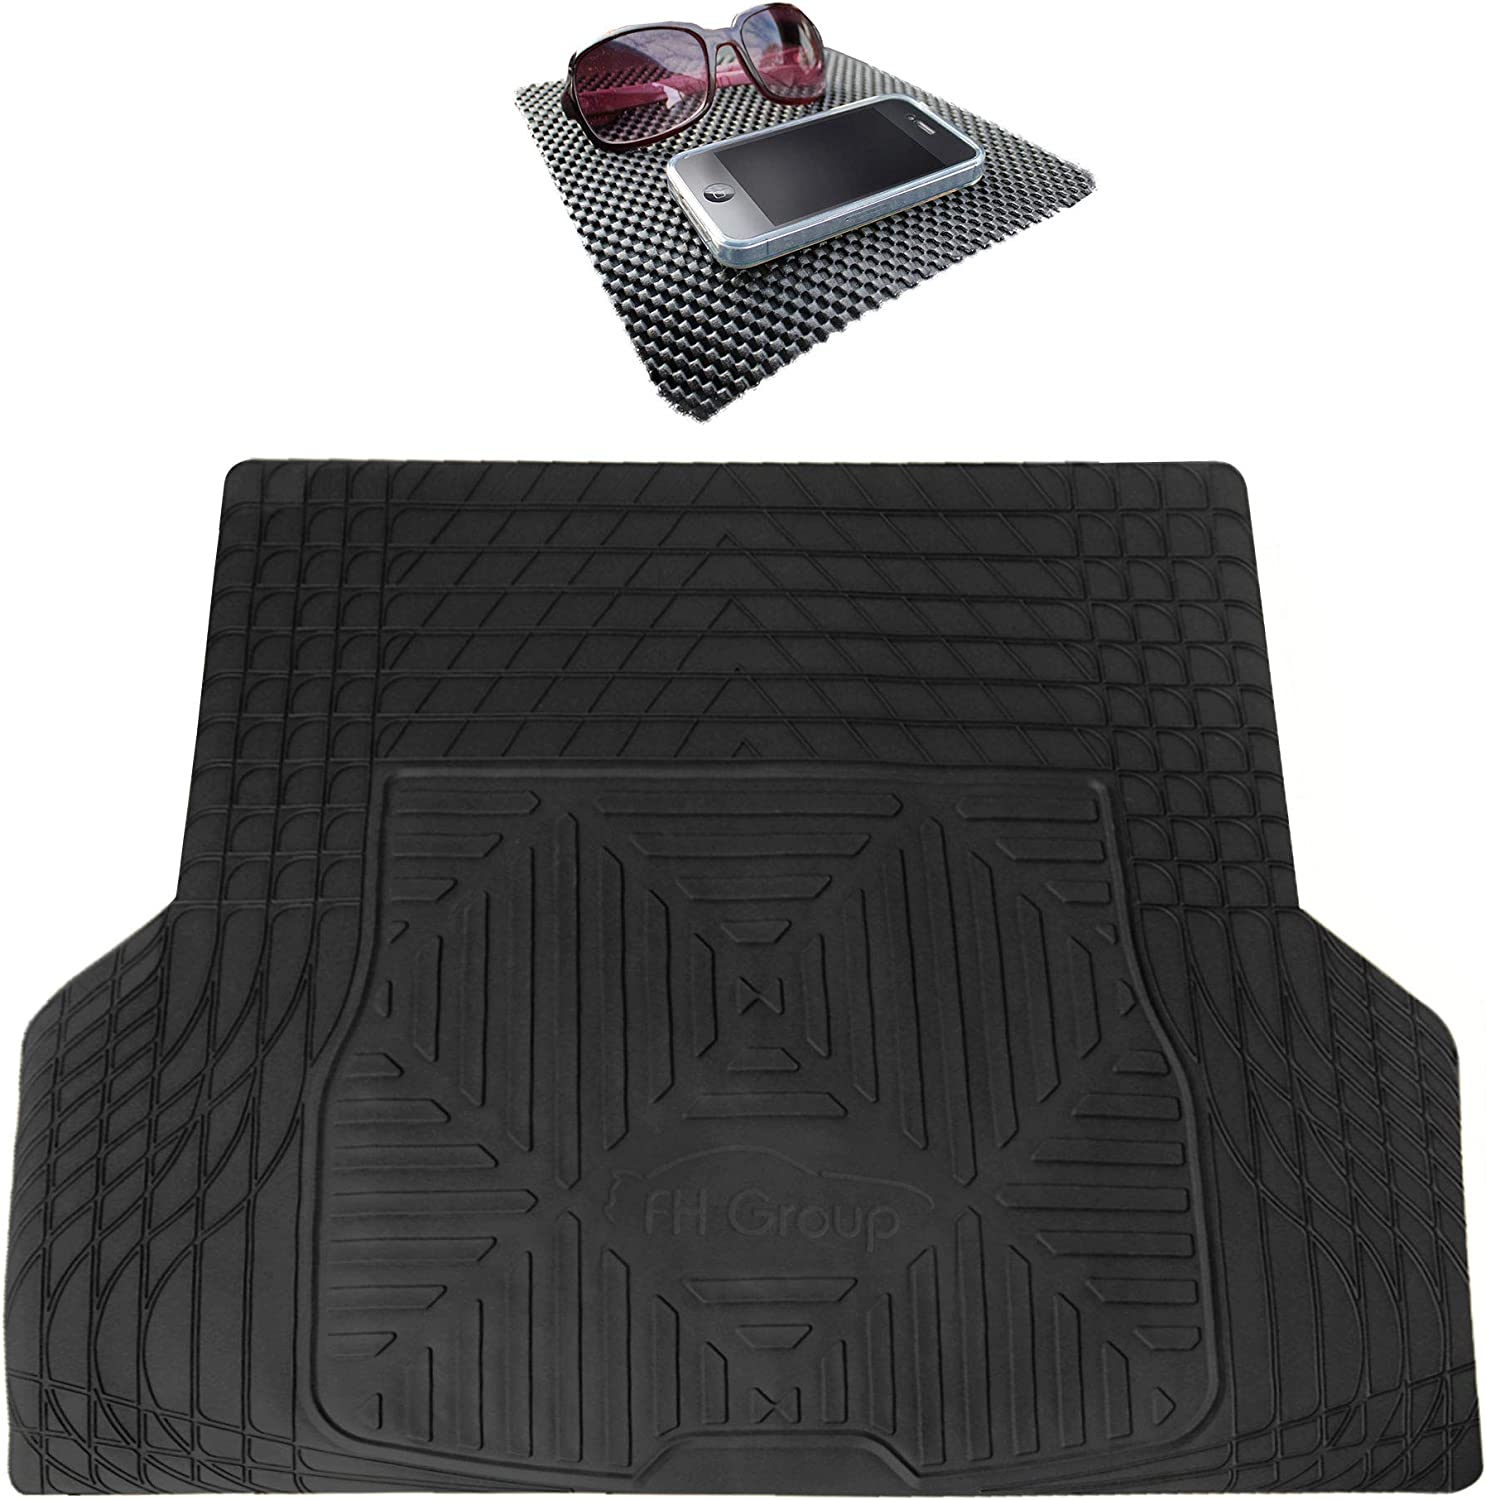 TLH Trimmable Quality Heavy Duty Rubber Cargo Mat Trunk Liner Universal for Trucks, Vans, SUVs Black Color w/Black Dash Pad